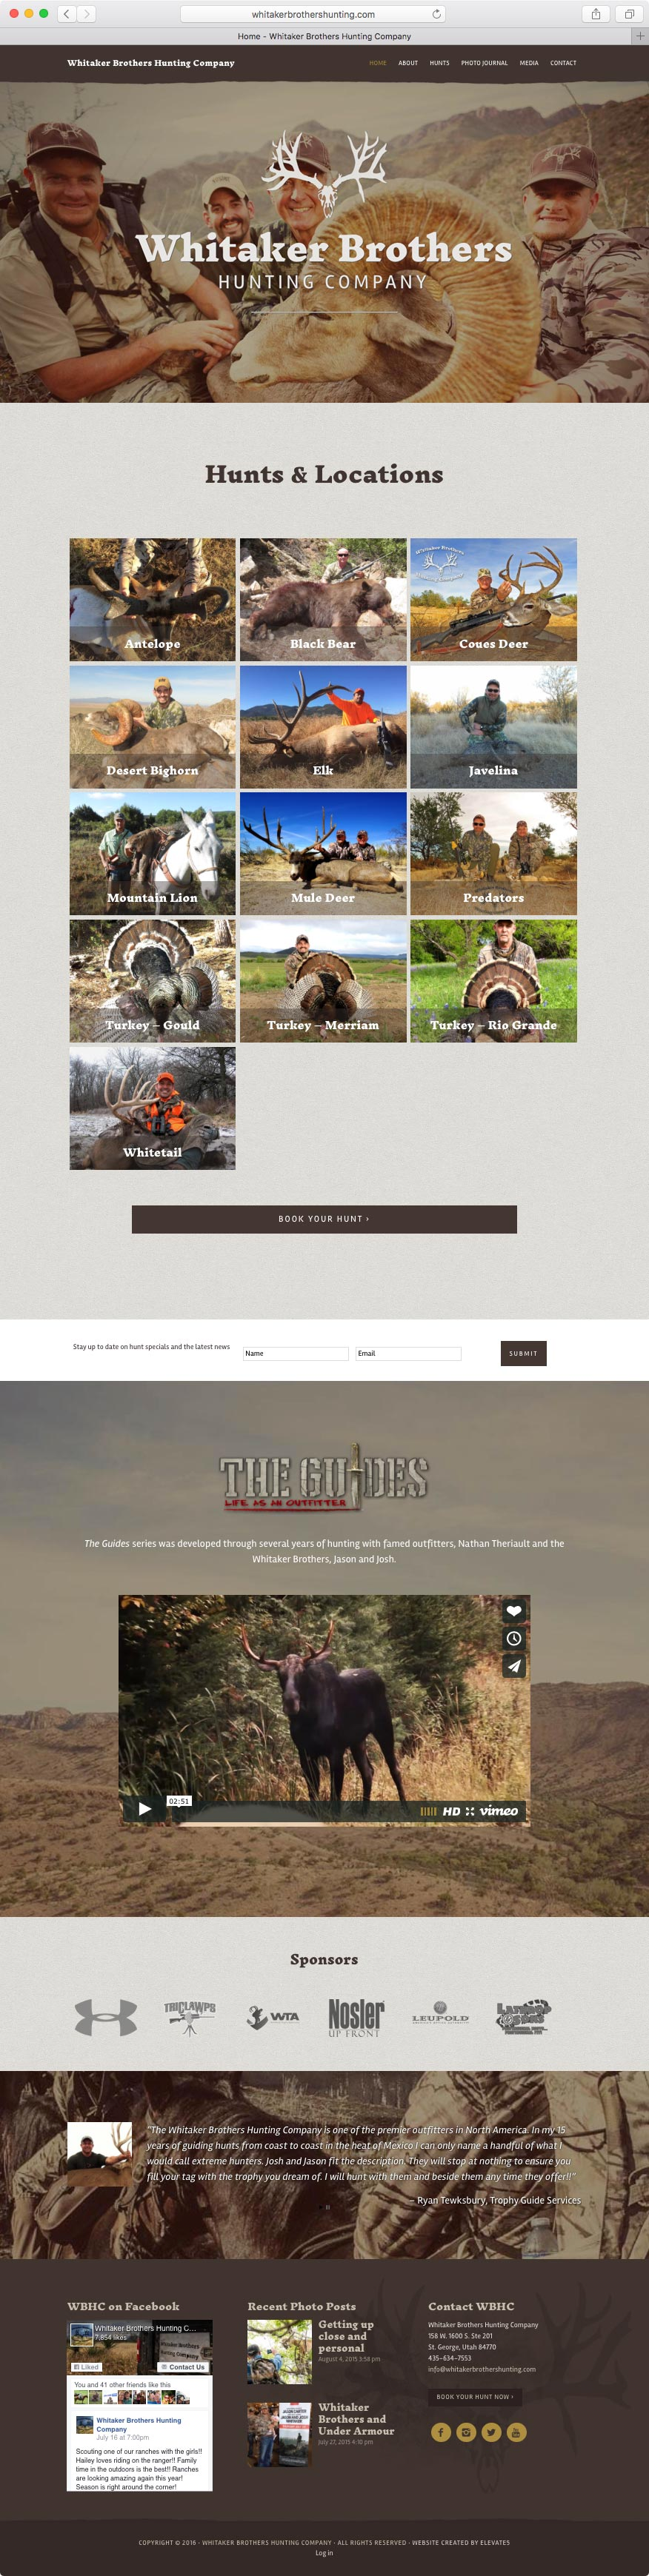 Web Design for Whitaker Brothers Hunting Company